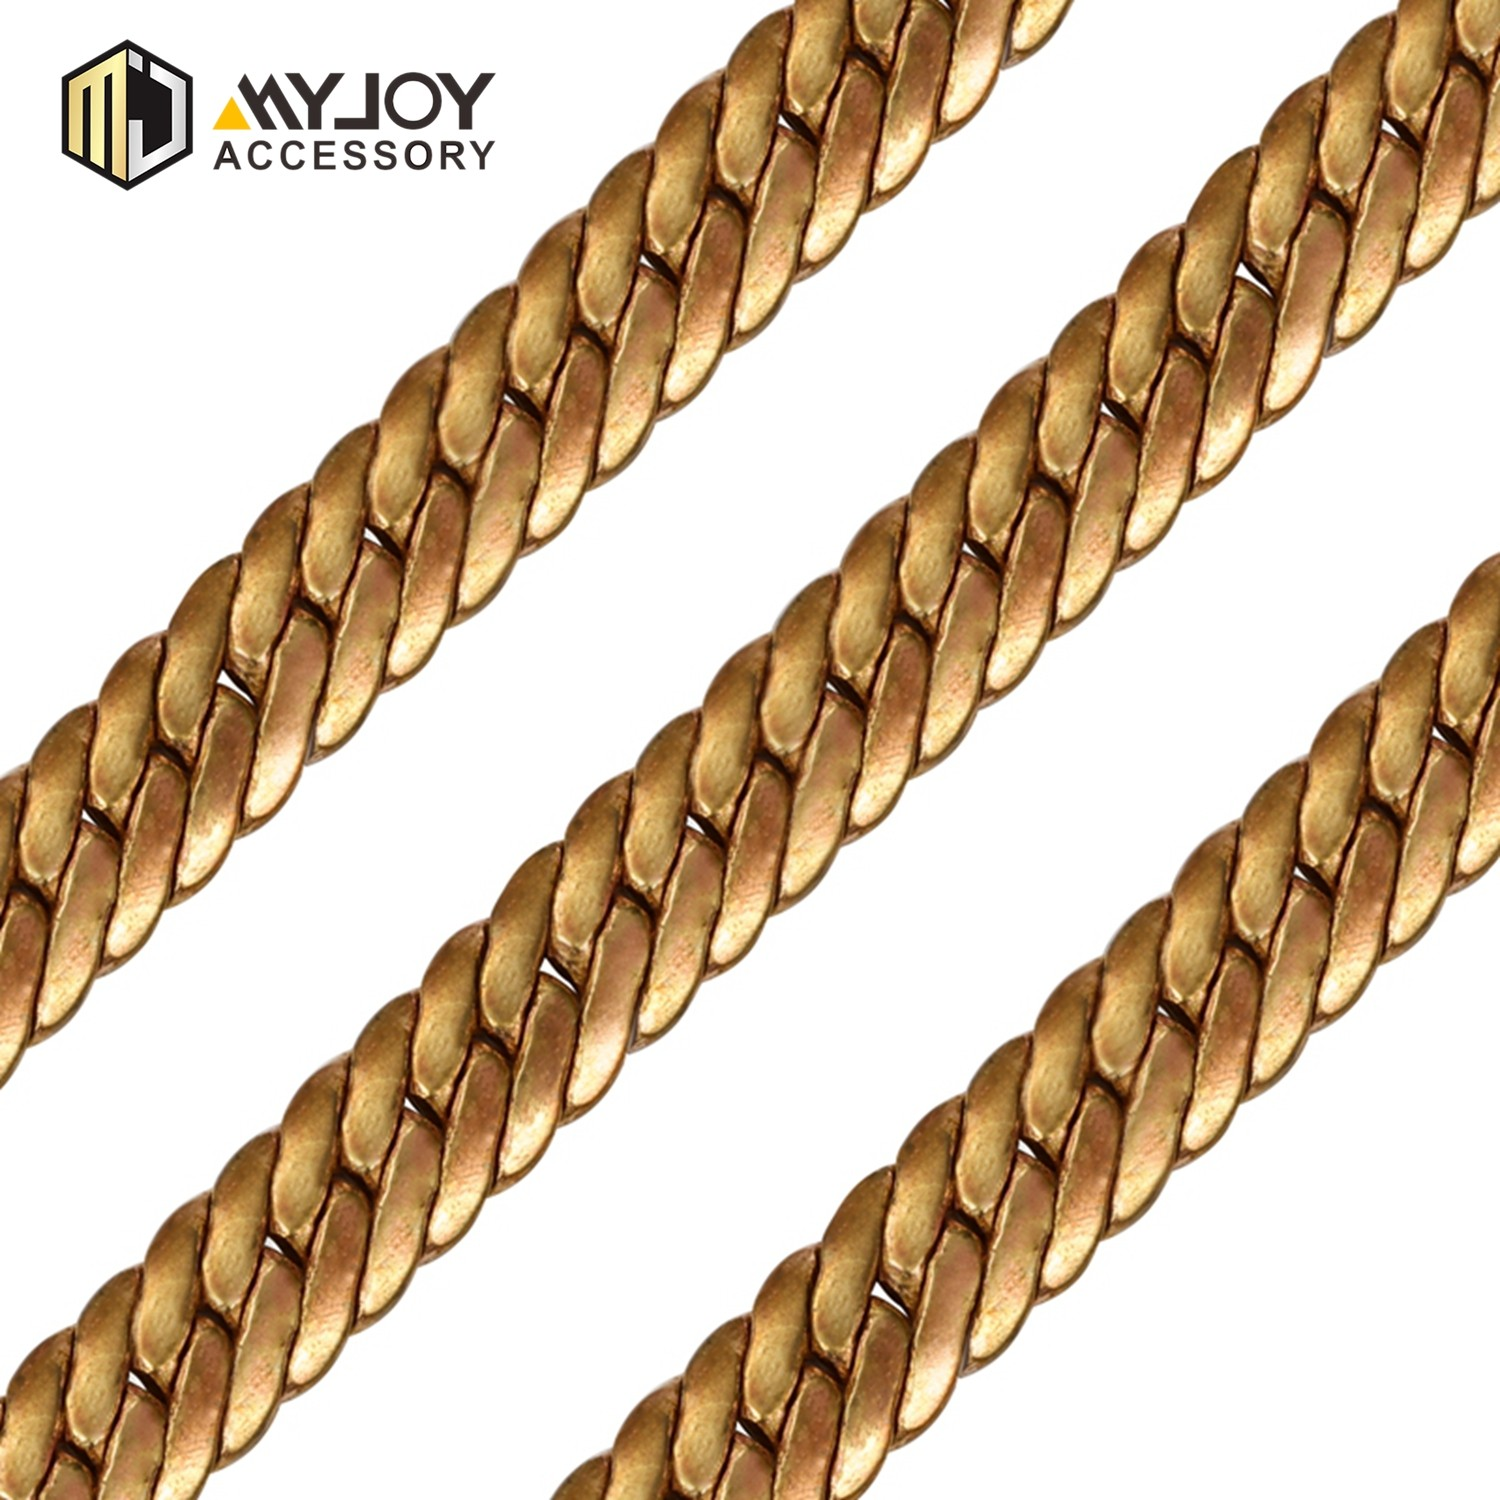 MYJOY High-quality bag chain manufacturers for purses-3